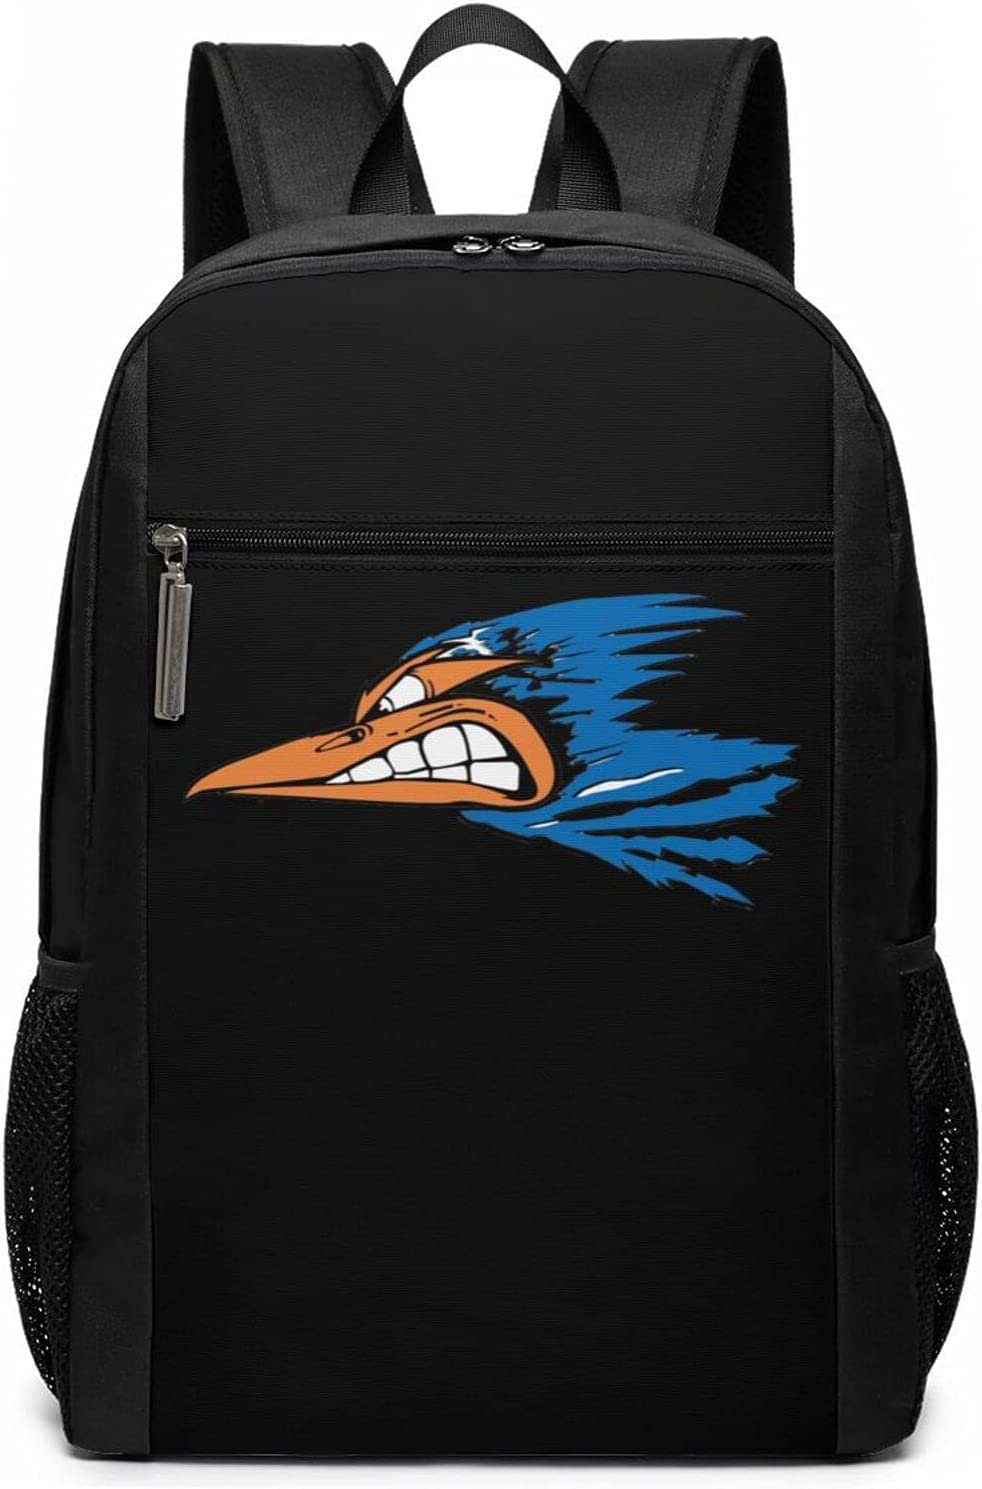 Angelina College Logo Backpack Gift Sports Print Max 82% OFF Travel Our shop OFFers the best service Unisex B